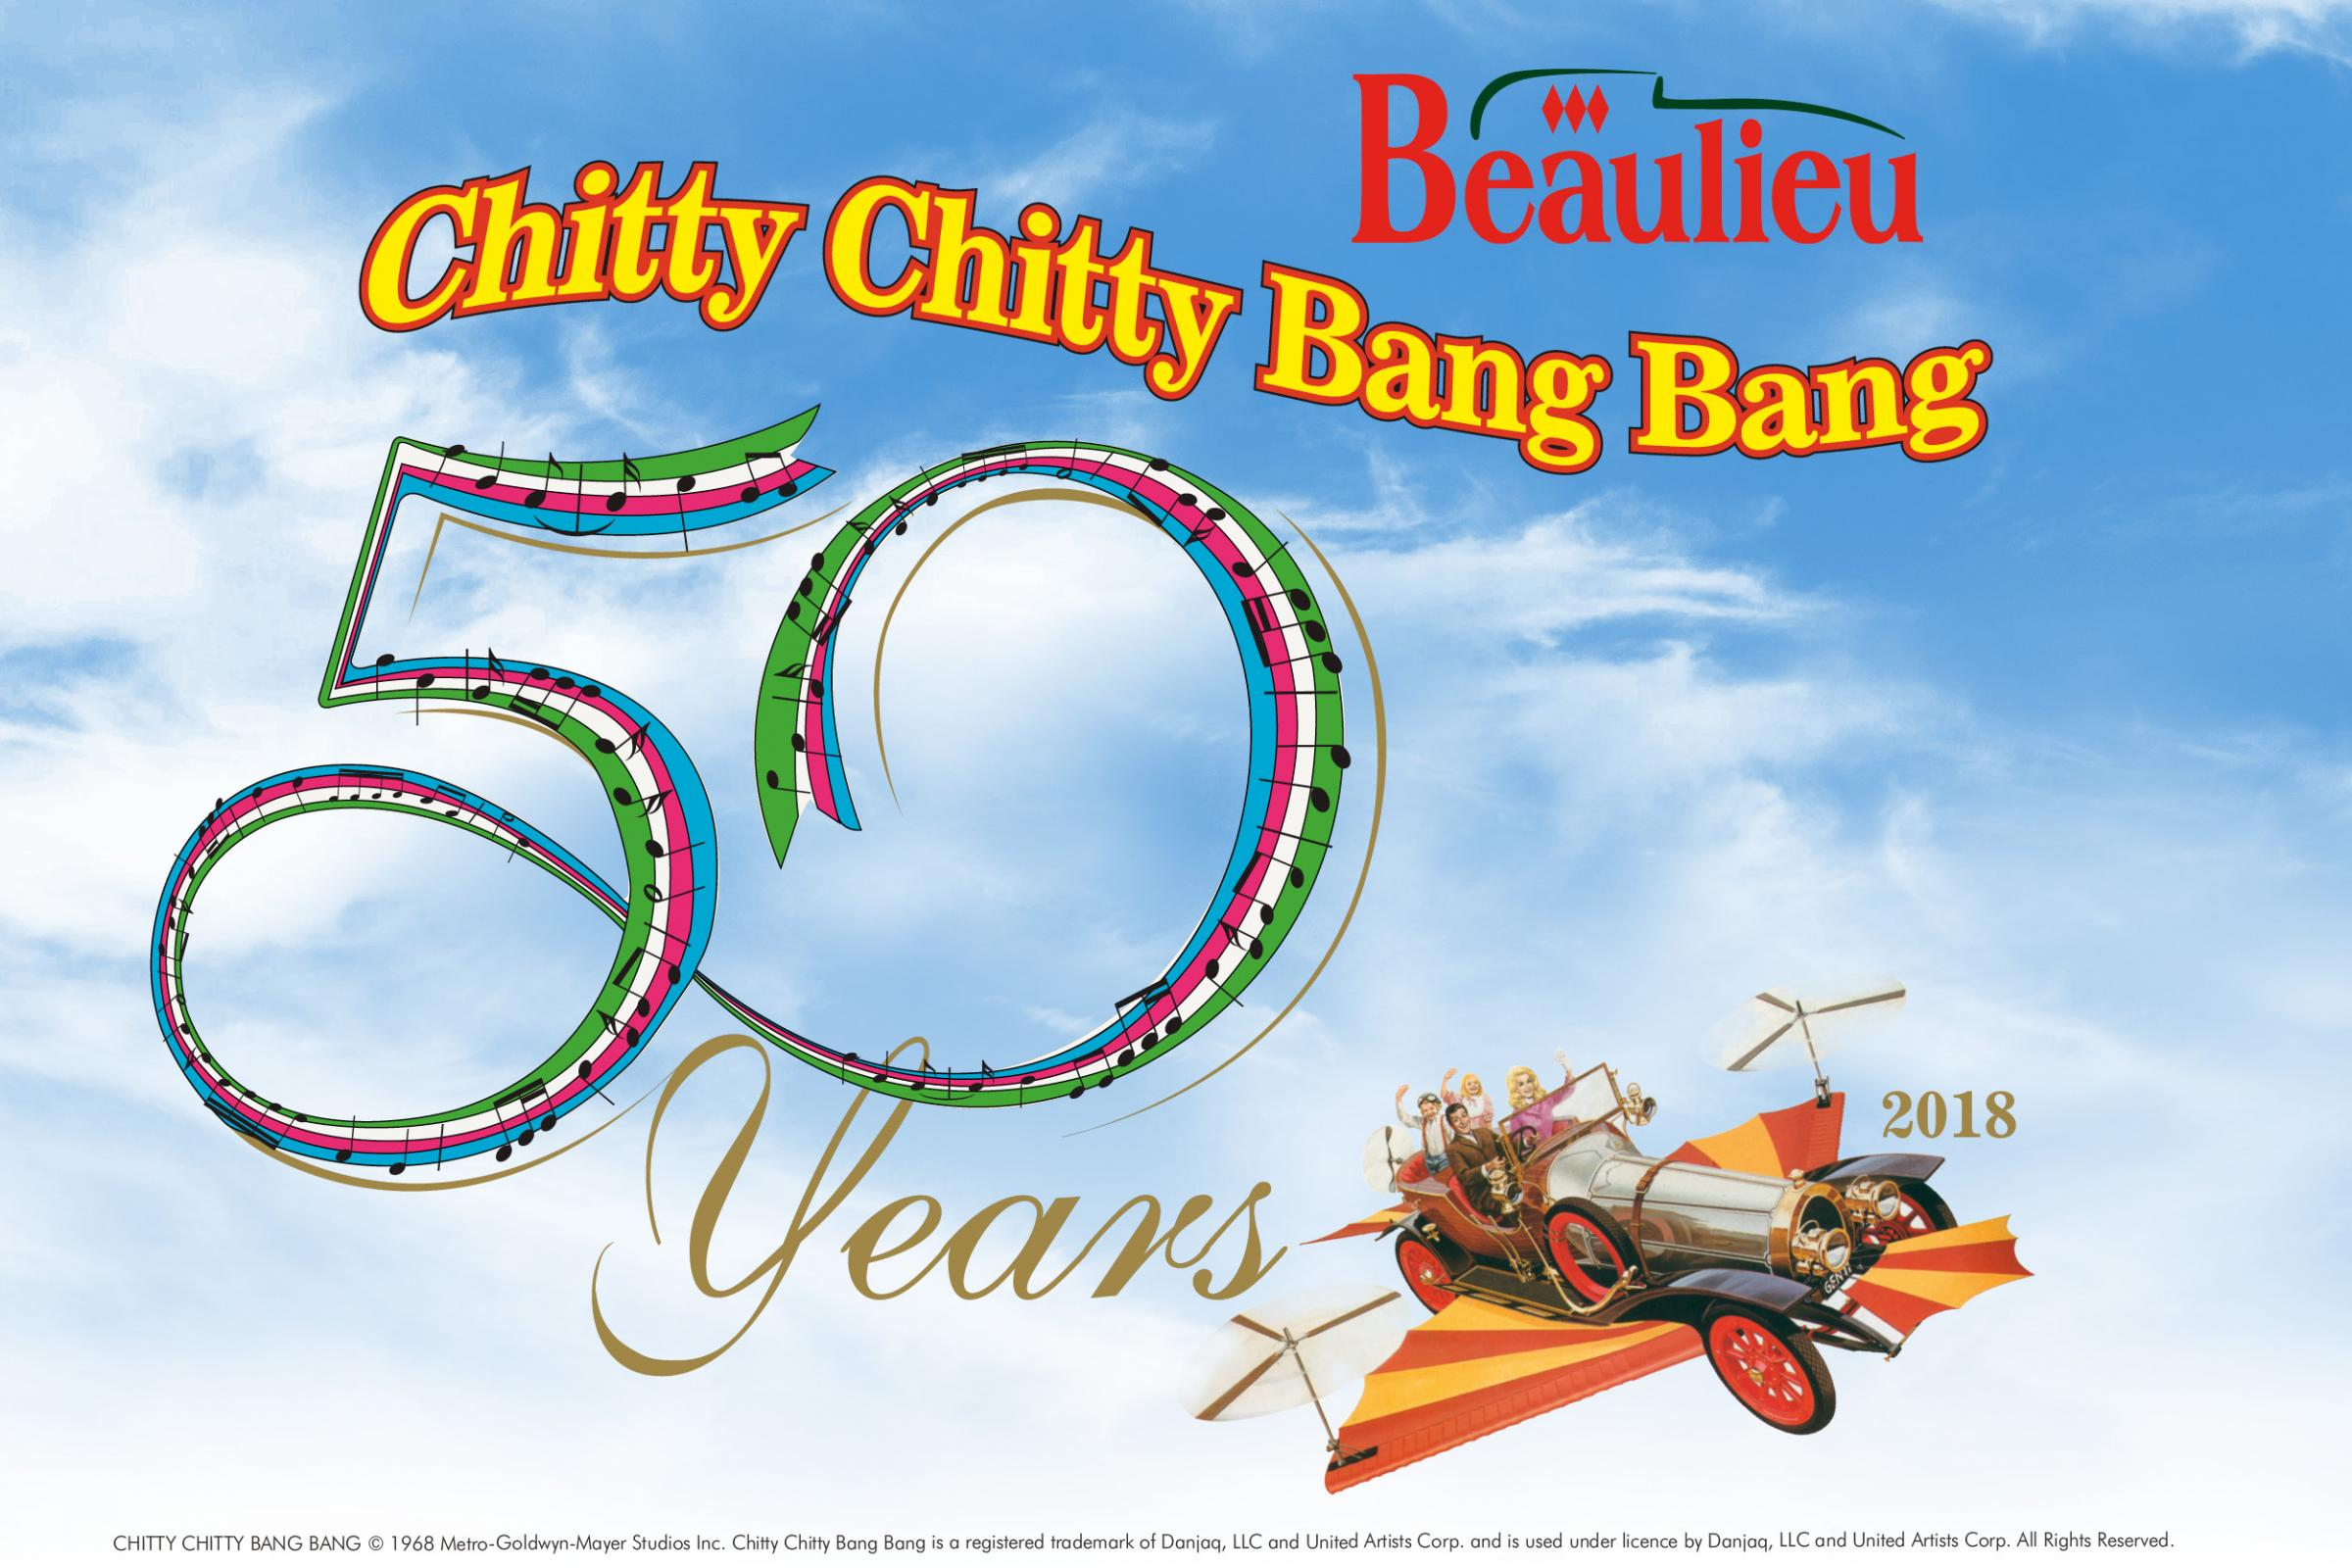 Chitty Chitty Bang Bang 50 Years Exhibition